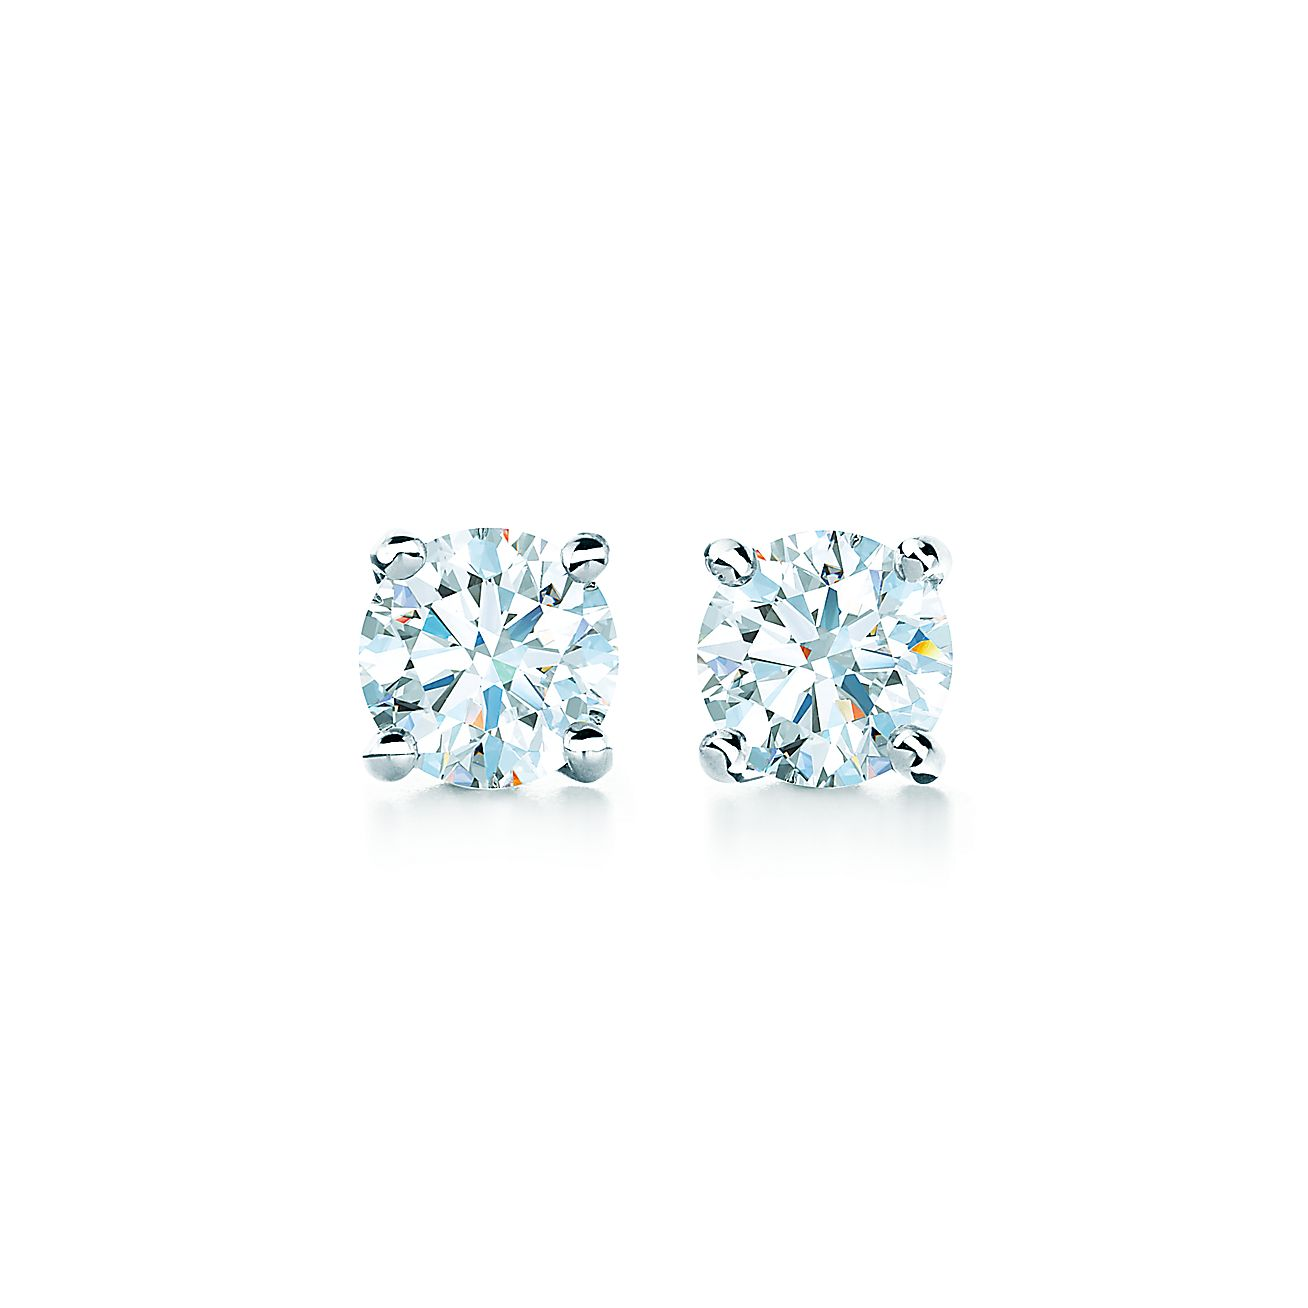 Tiffany Solitaire<br>Diamond Earrings